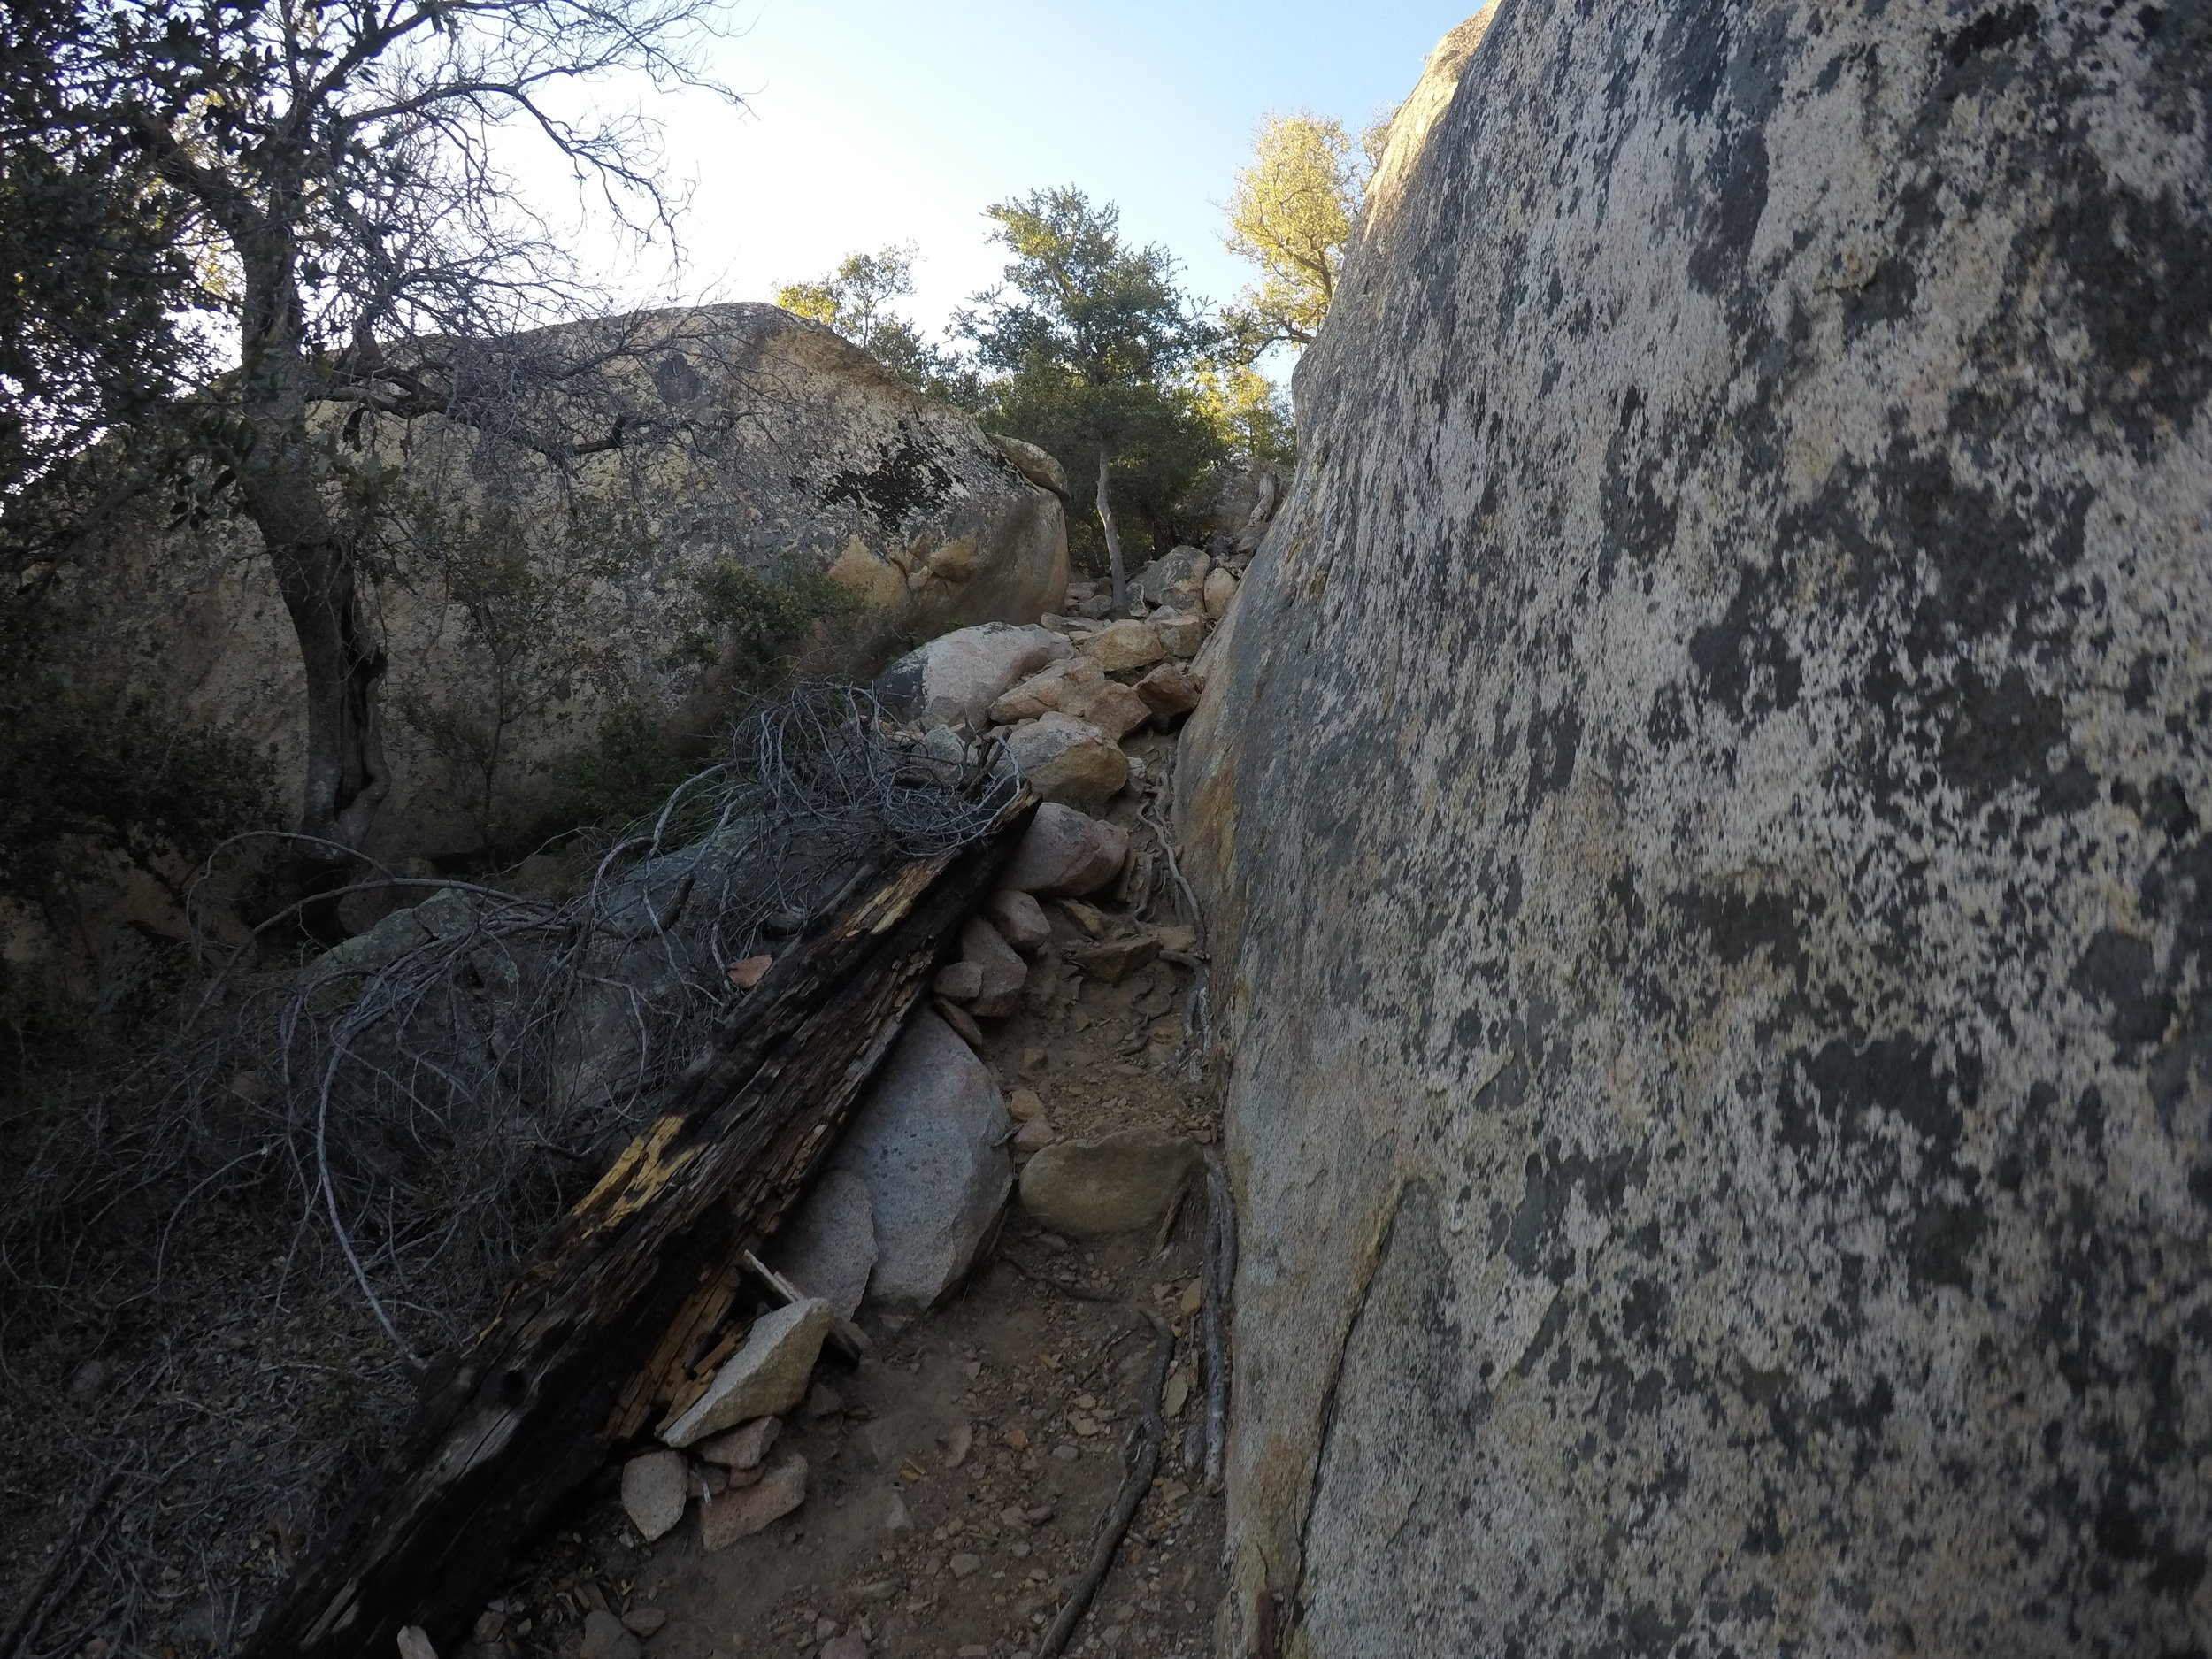 At 2.5 miles in, there is a steep descent past a number of boulders, but it is passable without any technical knowledge or much scrambling.